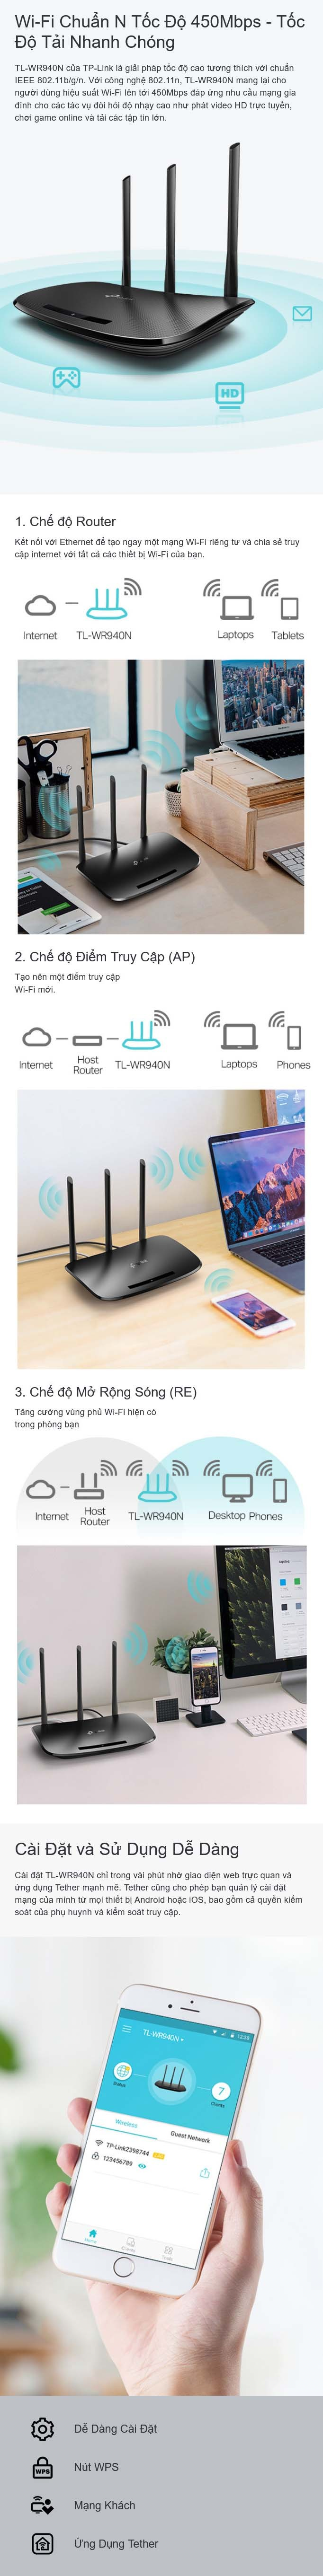 Bộ phát WIFI Router TP-Link TL-WR940N